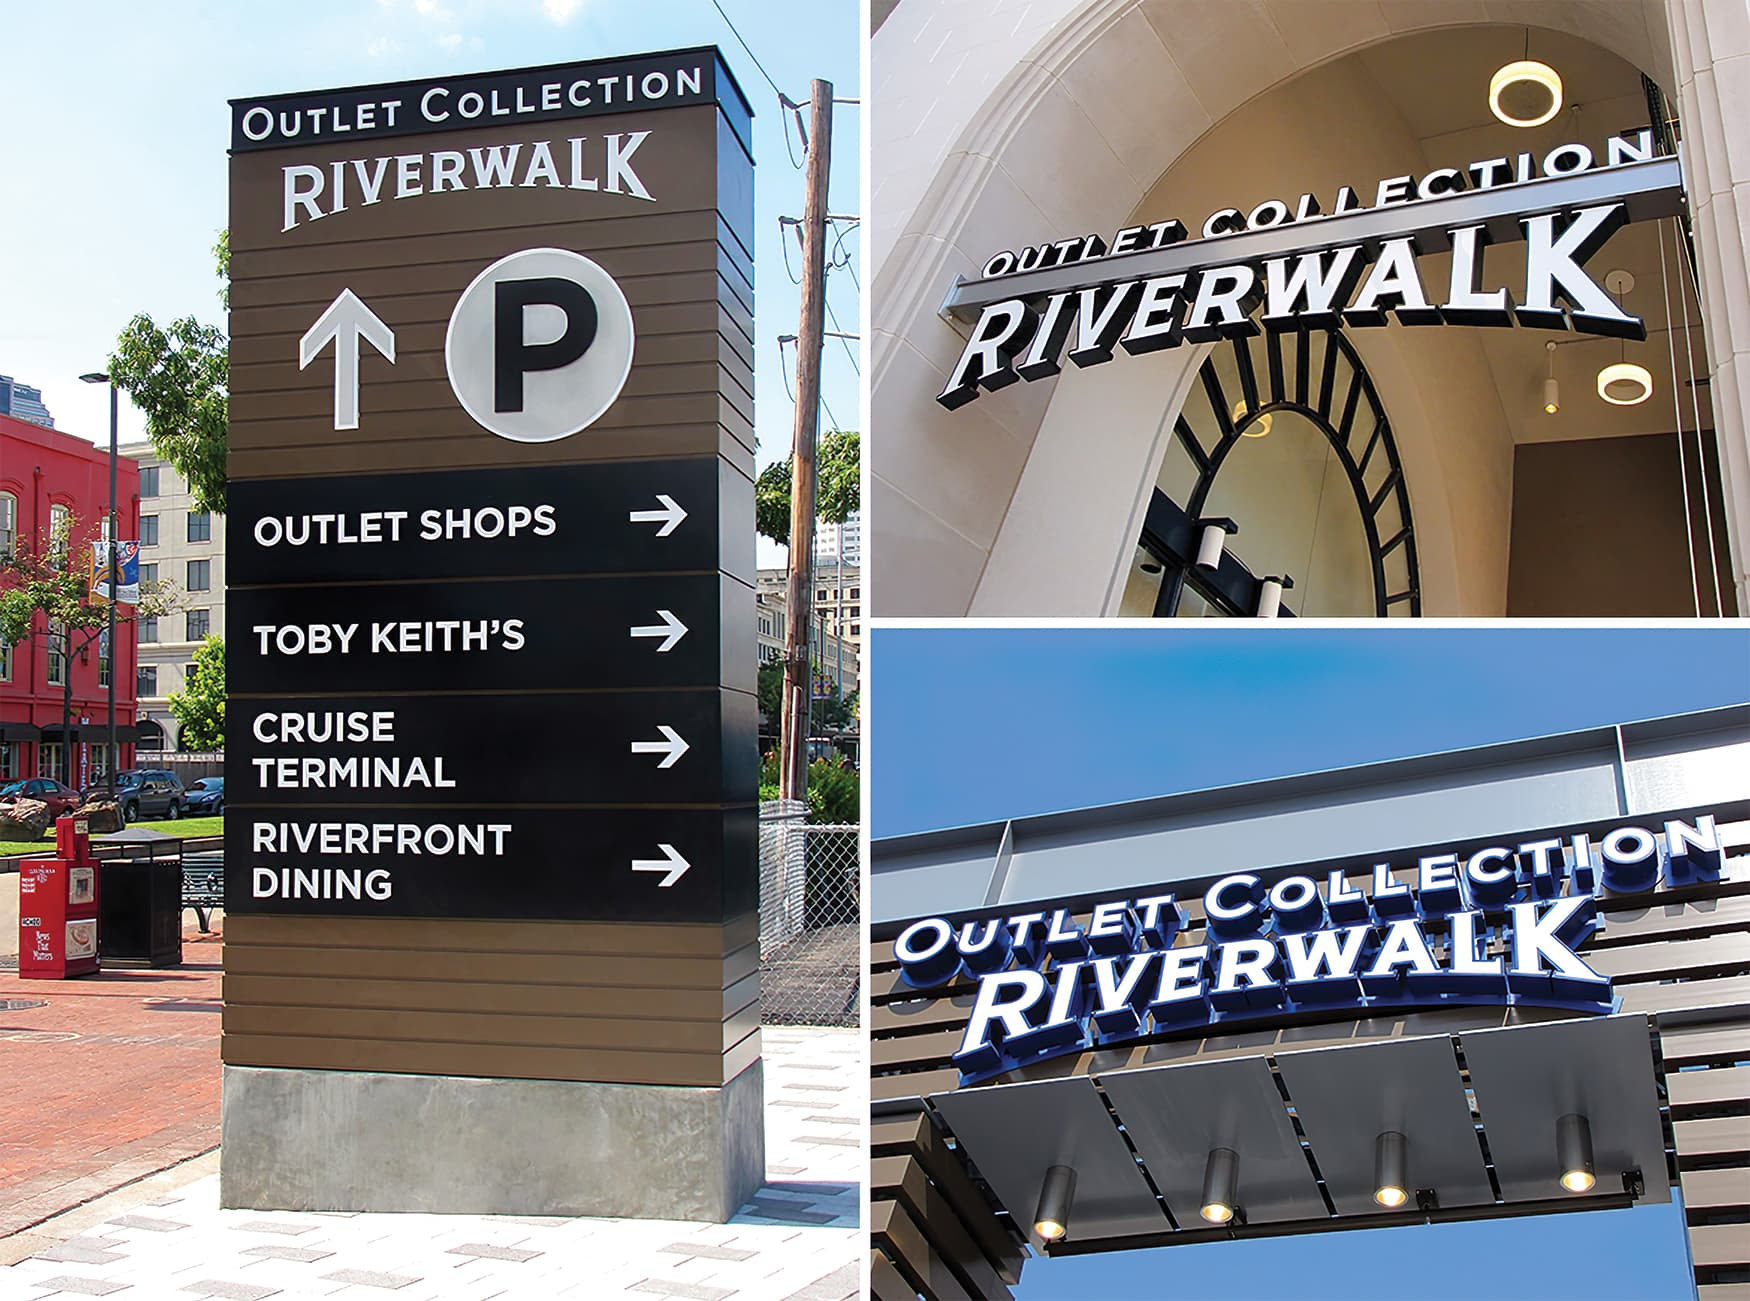 The Outlet Collection at Riverwalk. Identity Signage. Project Signage. Wayfinding Signage.